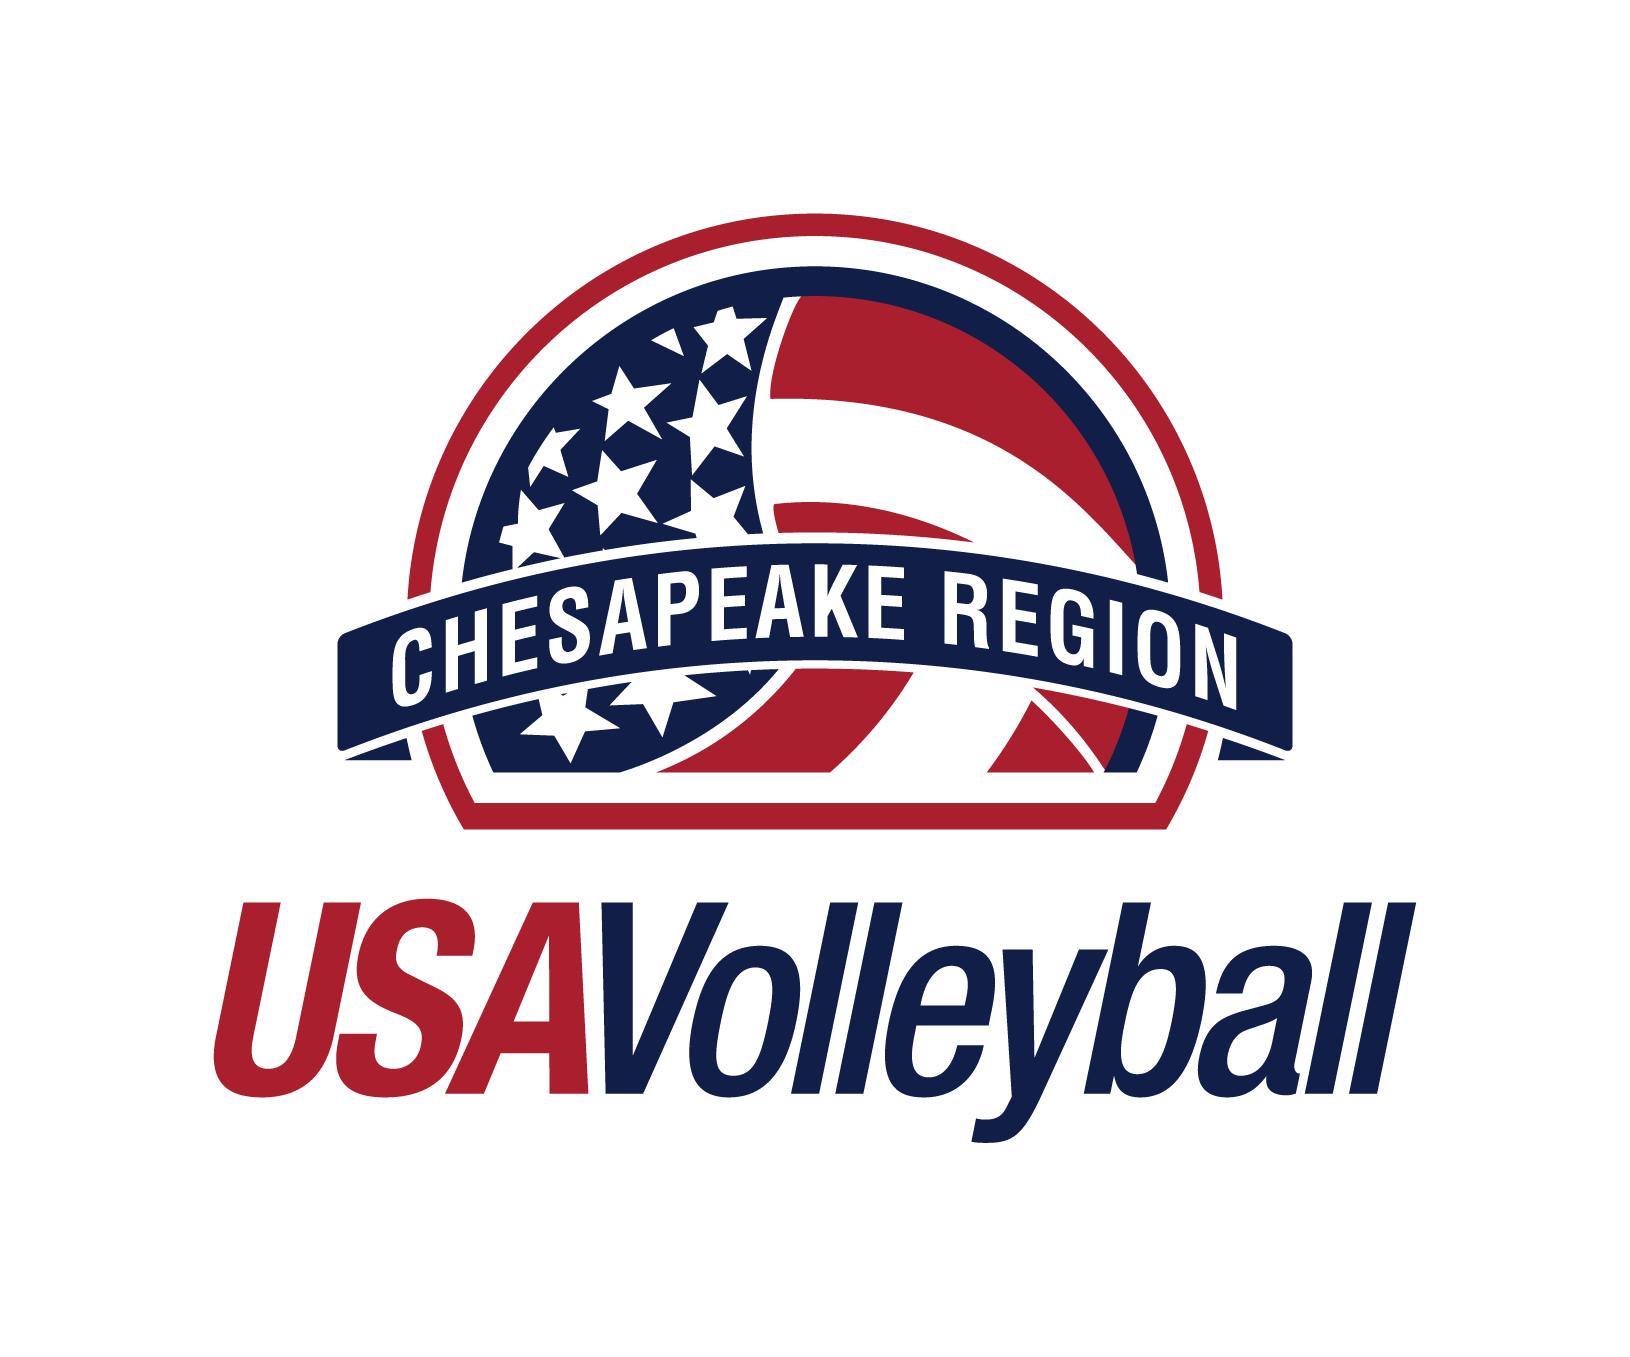 Chesapeake Region logo